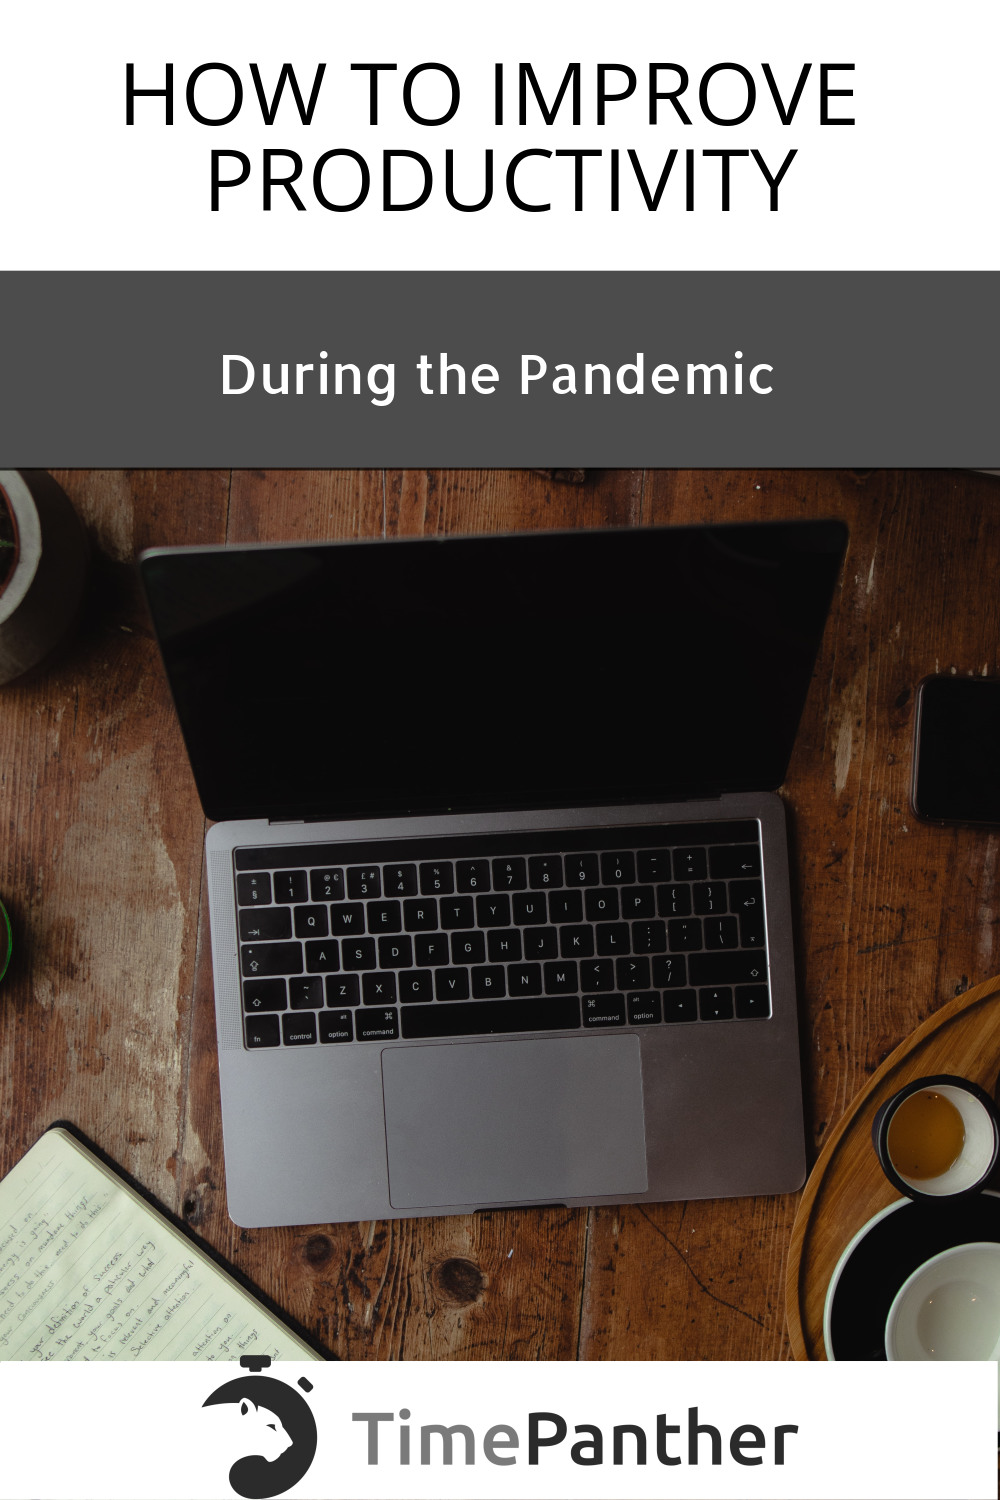 How to Improve Productivity During the Pandemic: some tips from TimePanther. Photo Description: a laptop on a wooden desk with a notebook and cups of coffee beside it. Photo by Callum Shaw on Unsplash